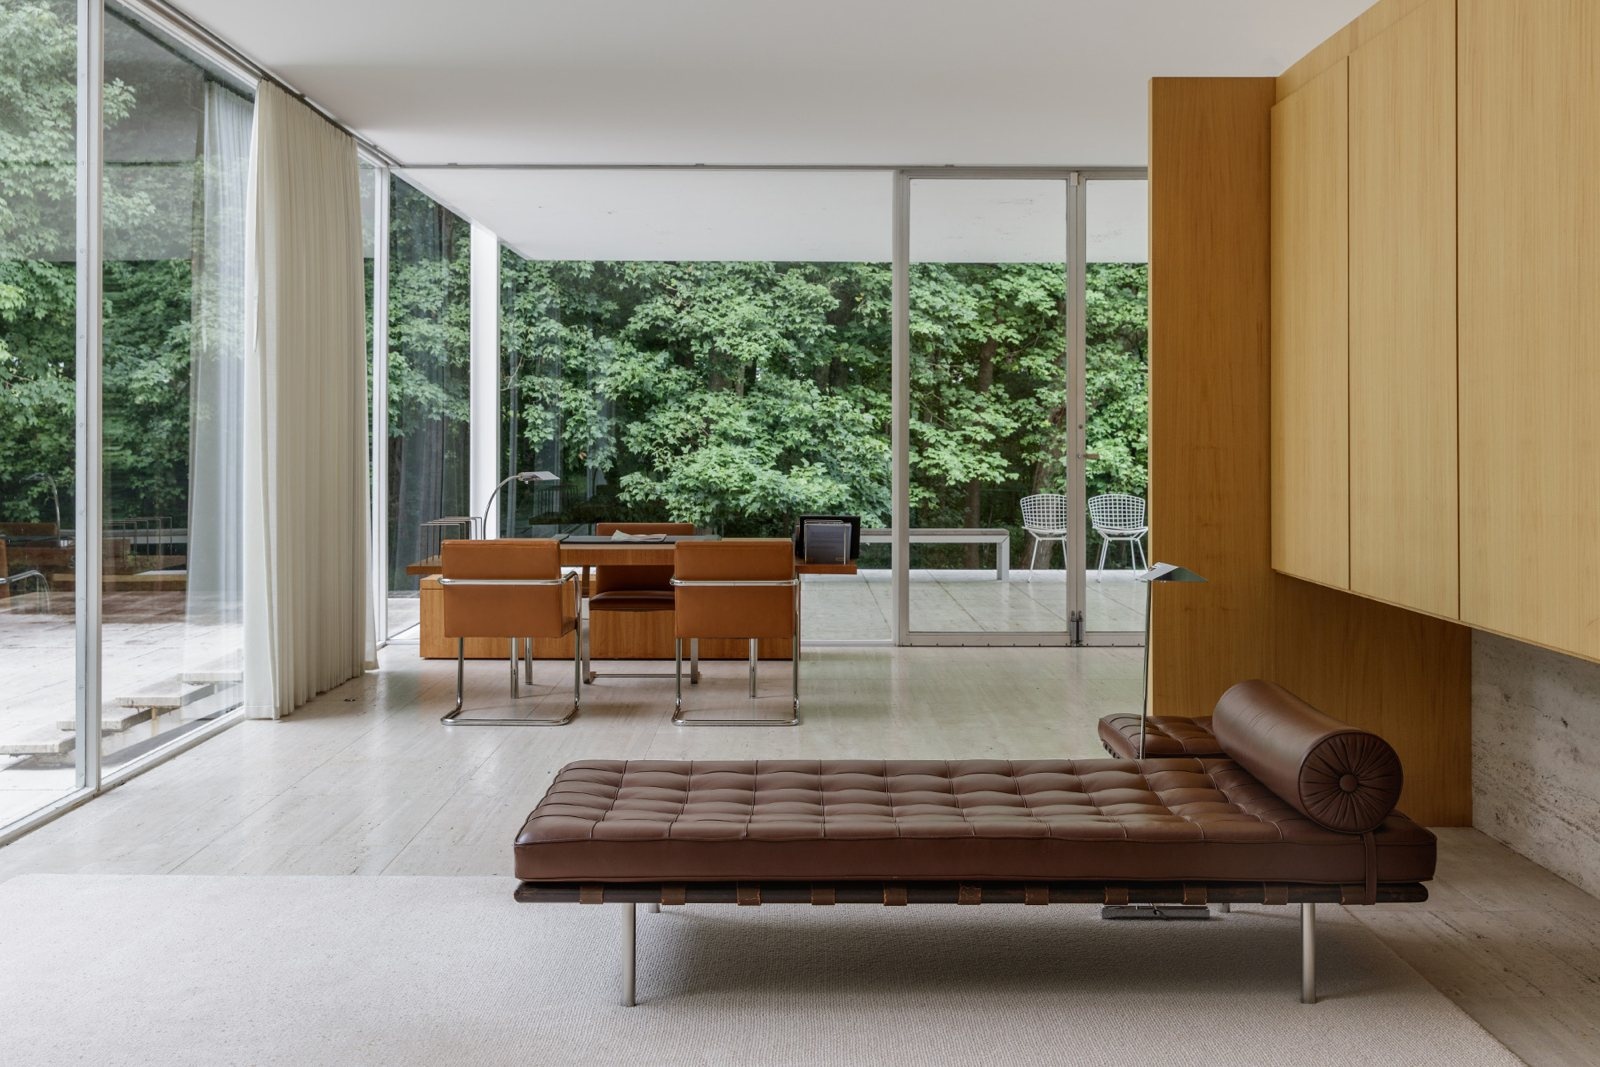 Ludwig Mies Van Der Rohe Farnsworth House By Ludwig Mies Van Der Rohe Up Interiors